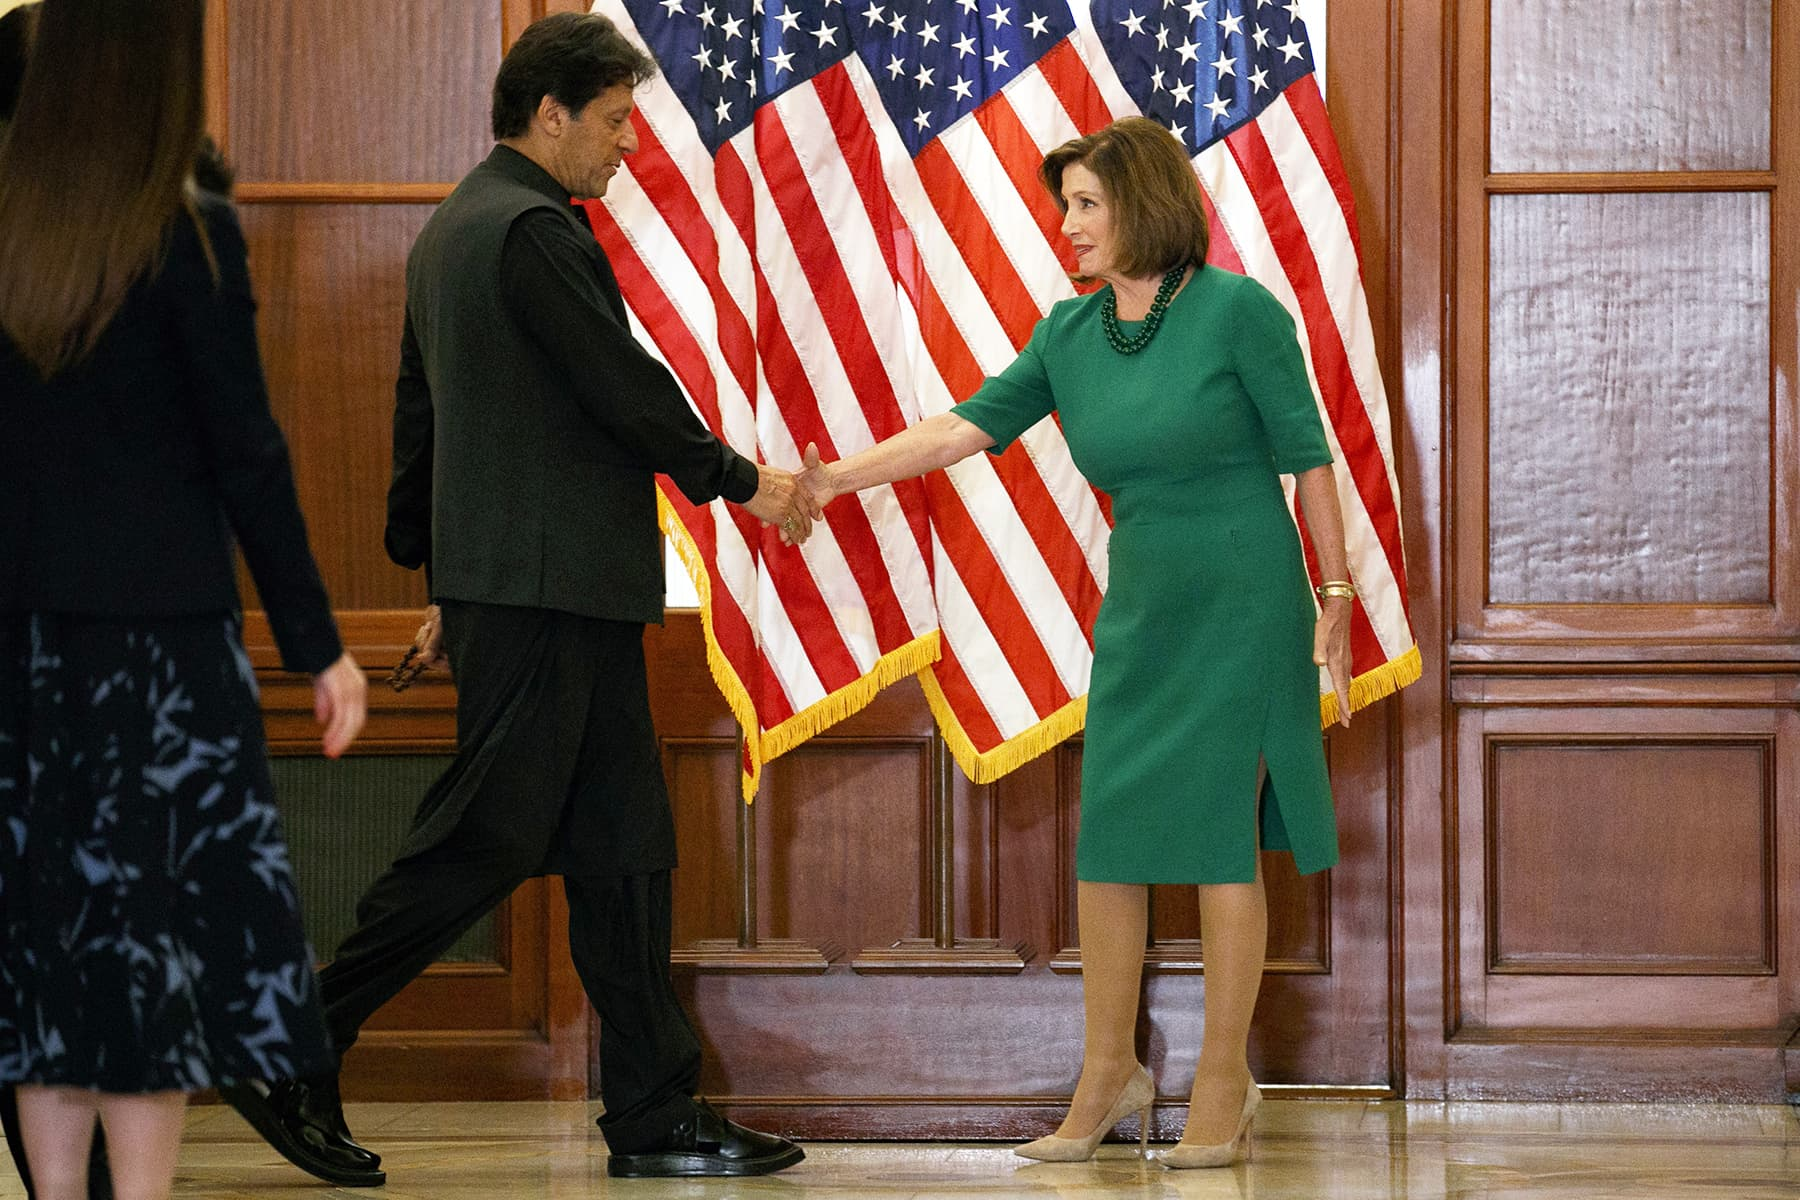 House Speaker Nancy Pelosi of California shakes hands with PM Imran on July 23 at Capitol Hill in Washington. — AFP